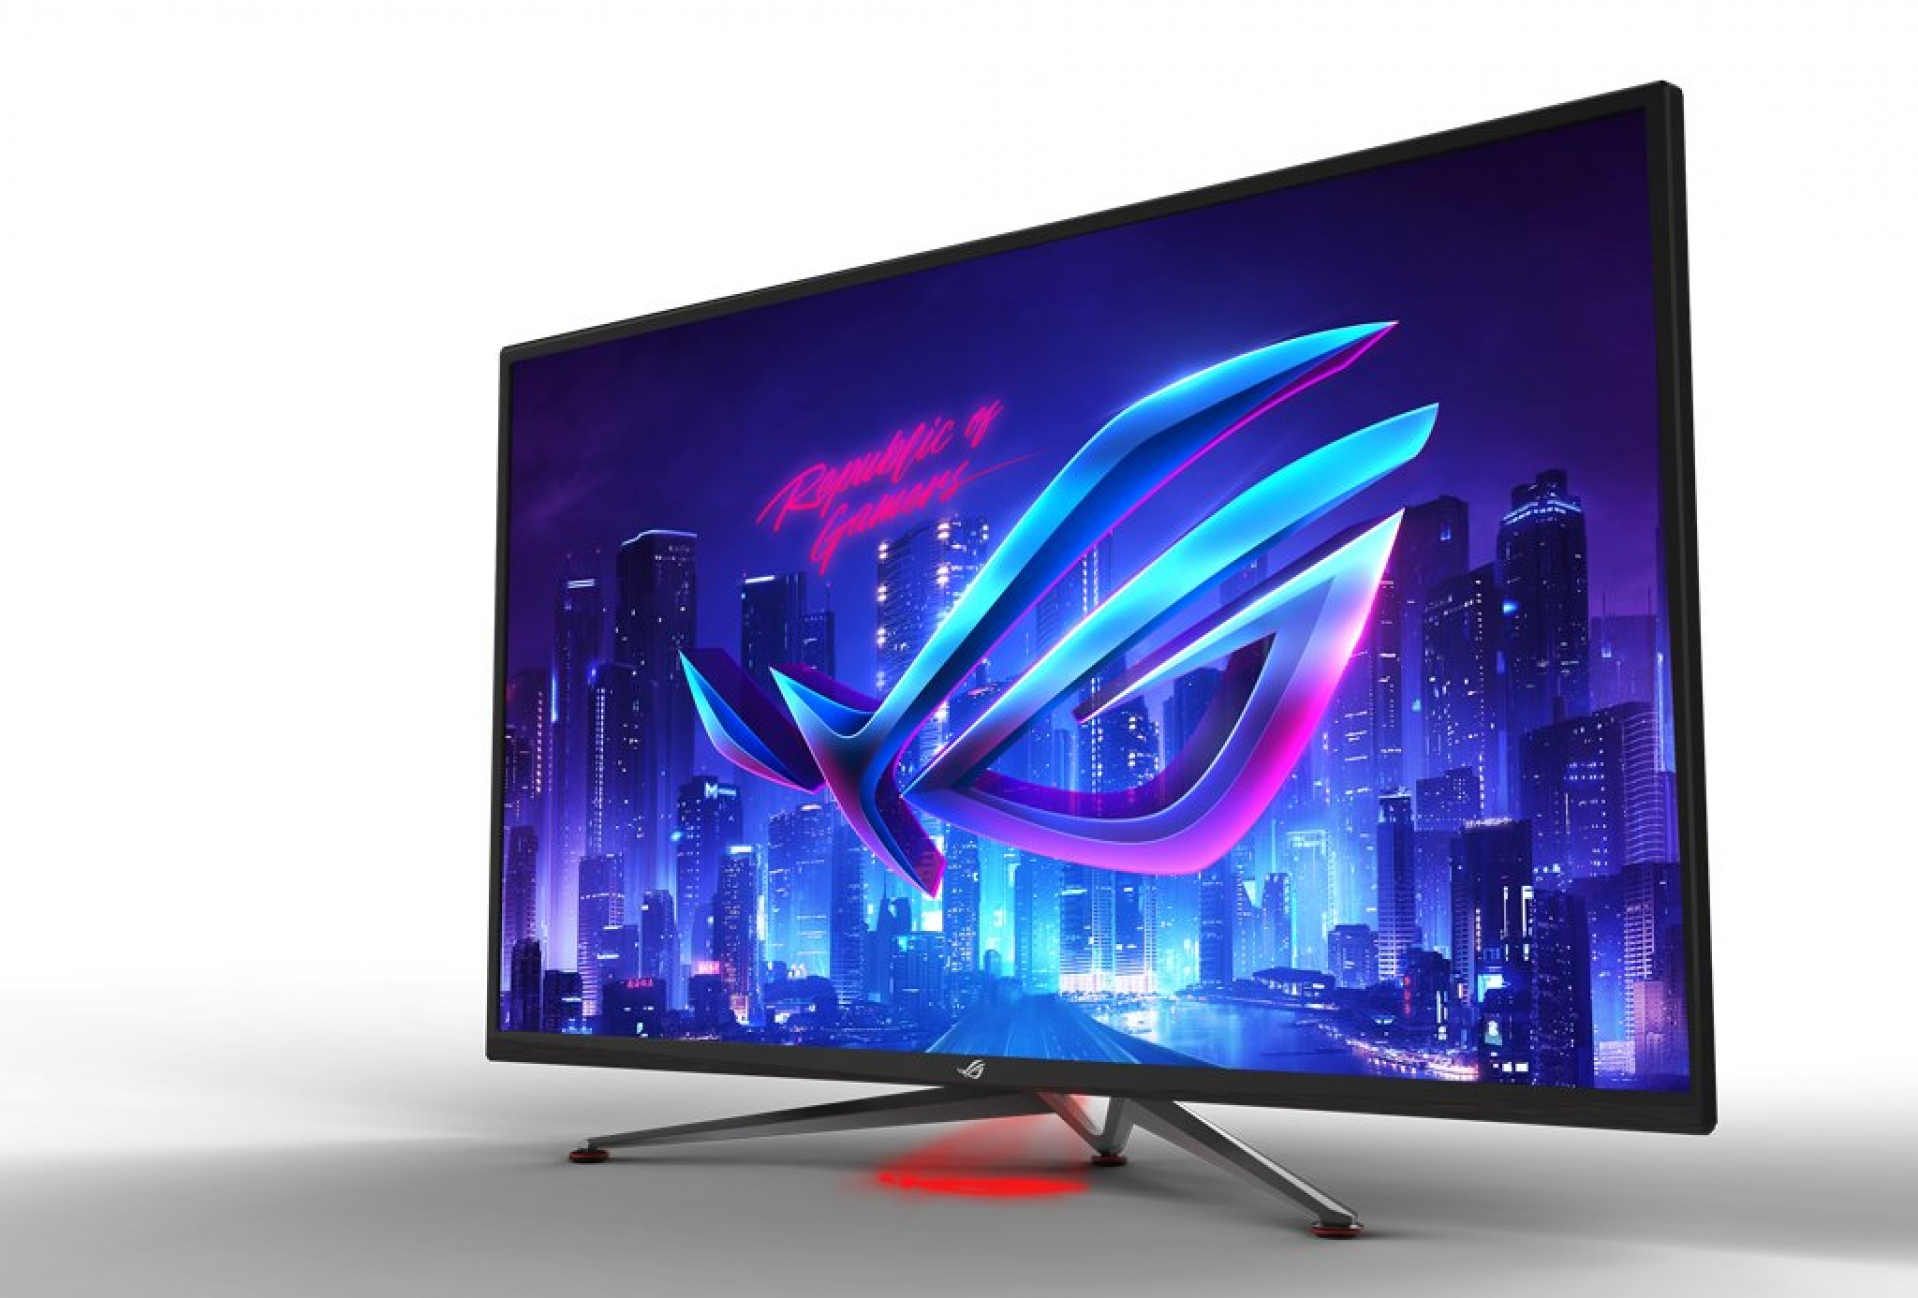 ASUS ROG and AMD reveals the world's first Display Stream